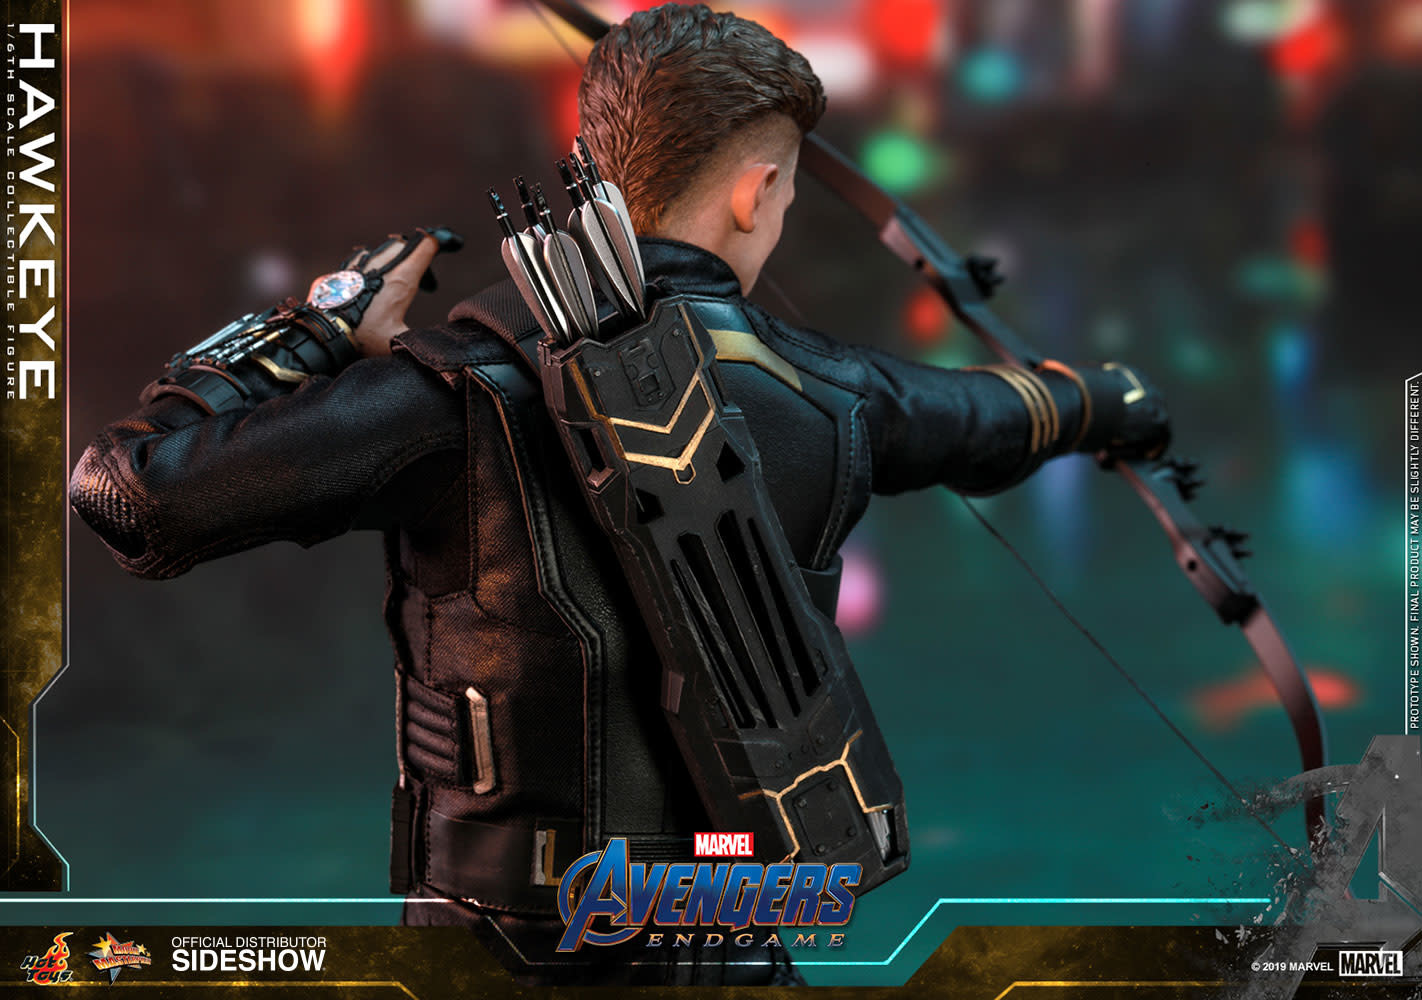 Hot Toy Marvel: Avengers Endgame - Hawkeye - 1:6 Scale Figure